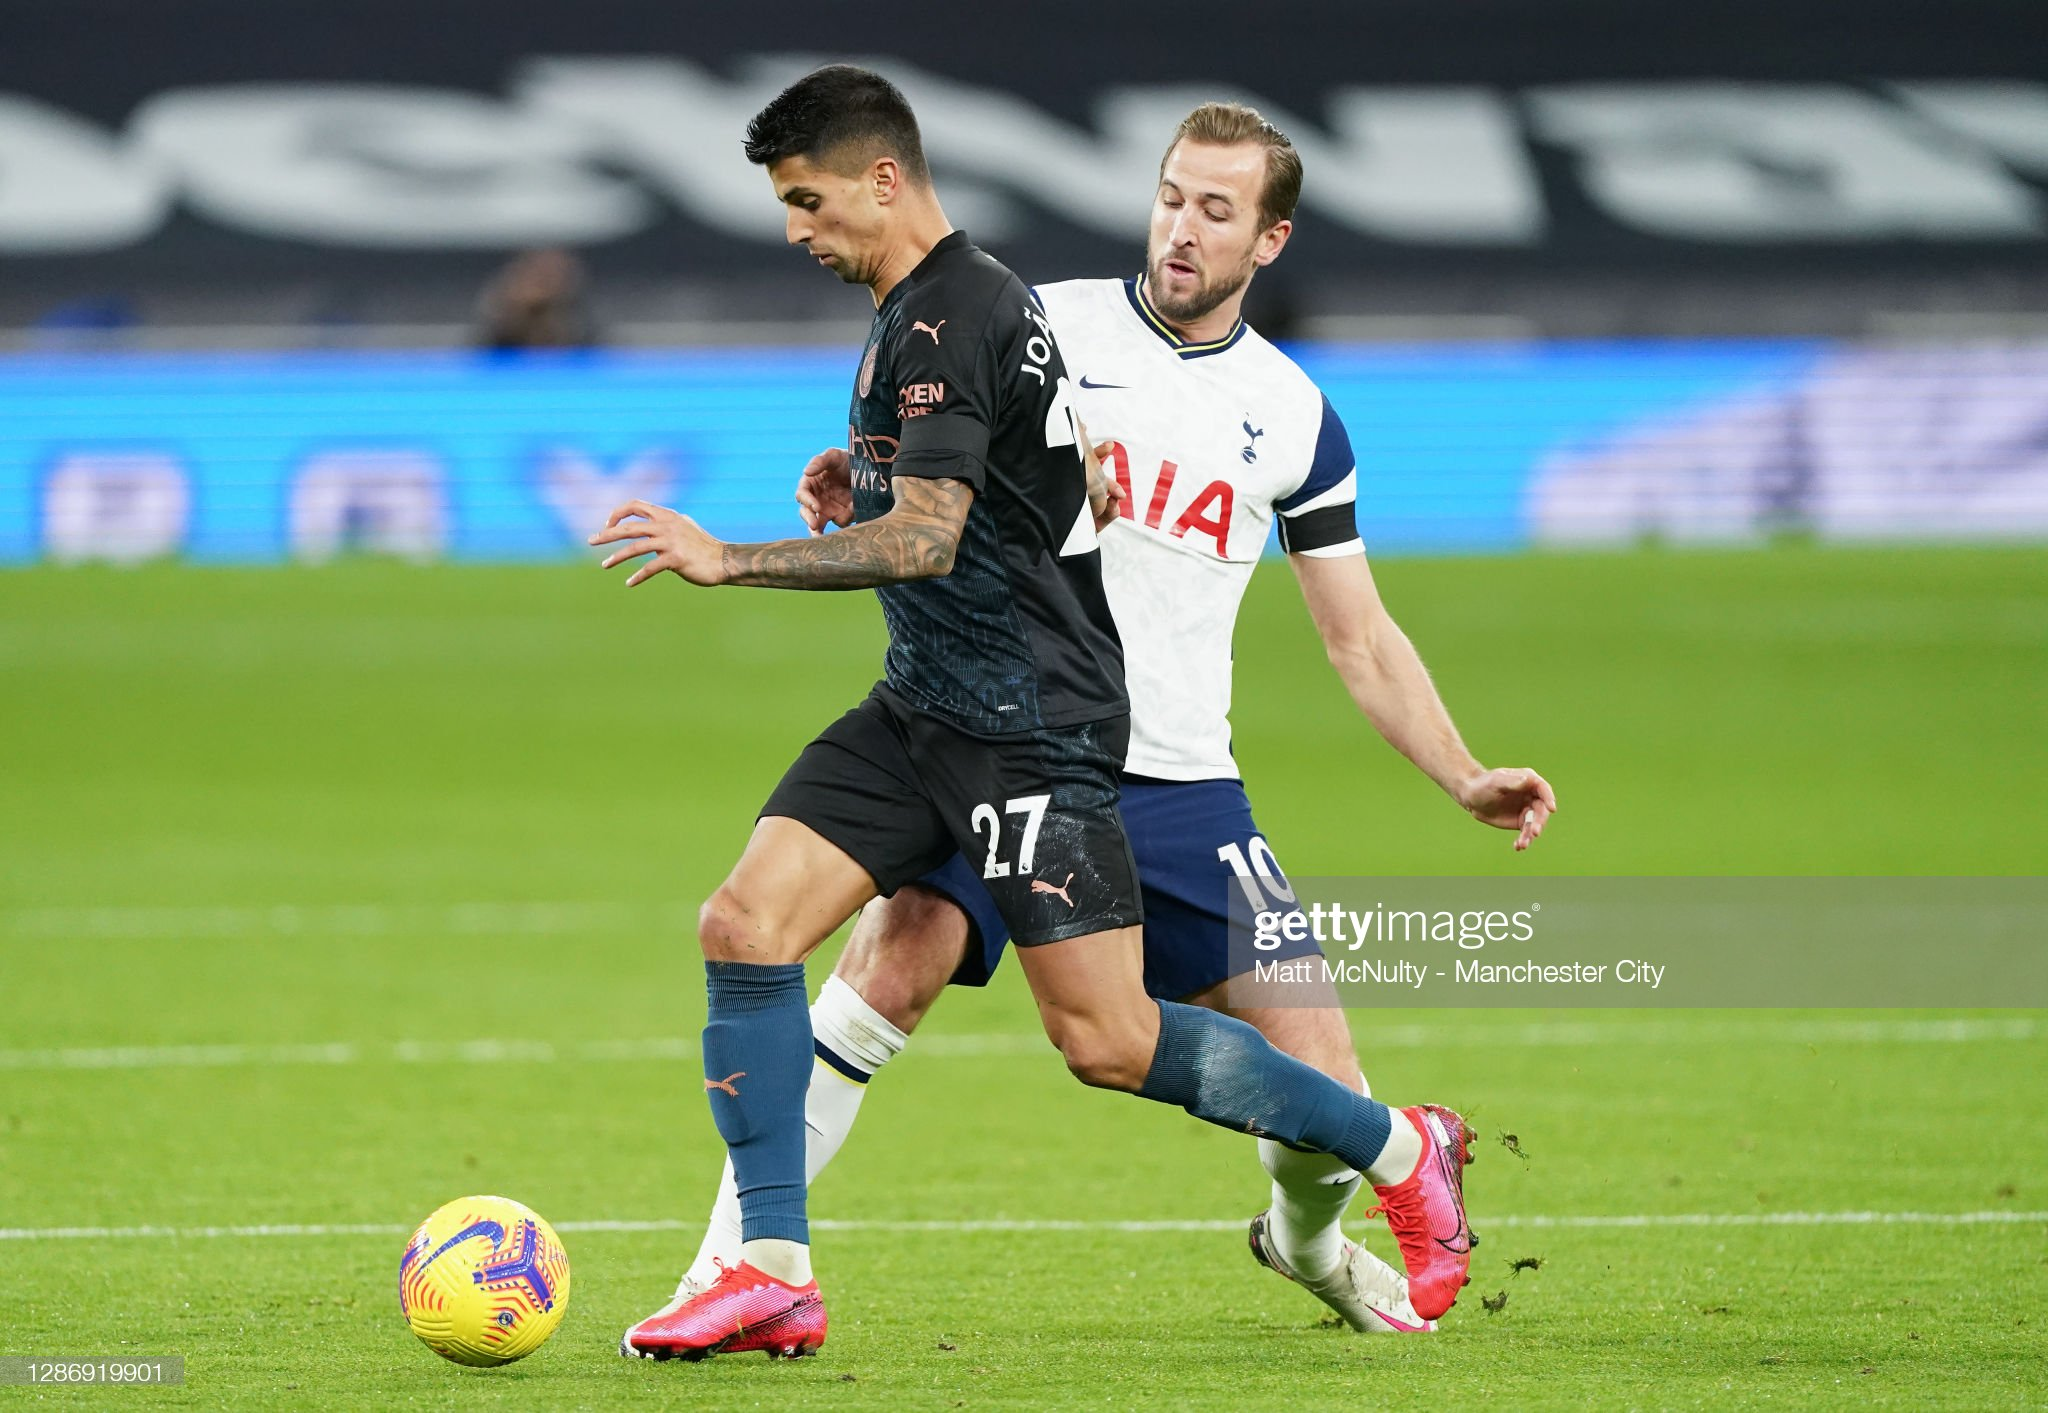 Tottenham vs Manchester City Preview, prediction and odds